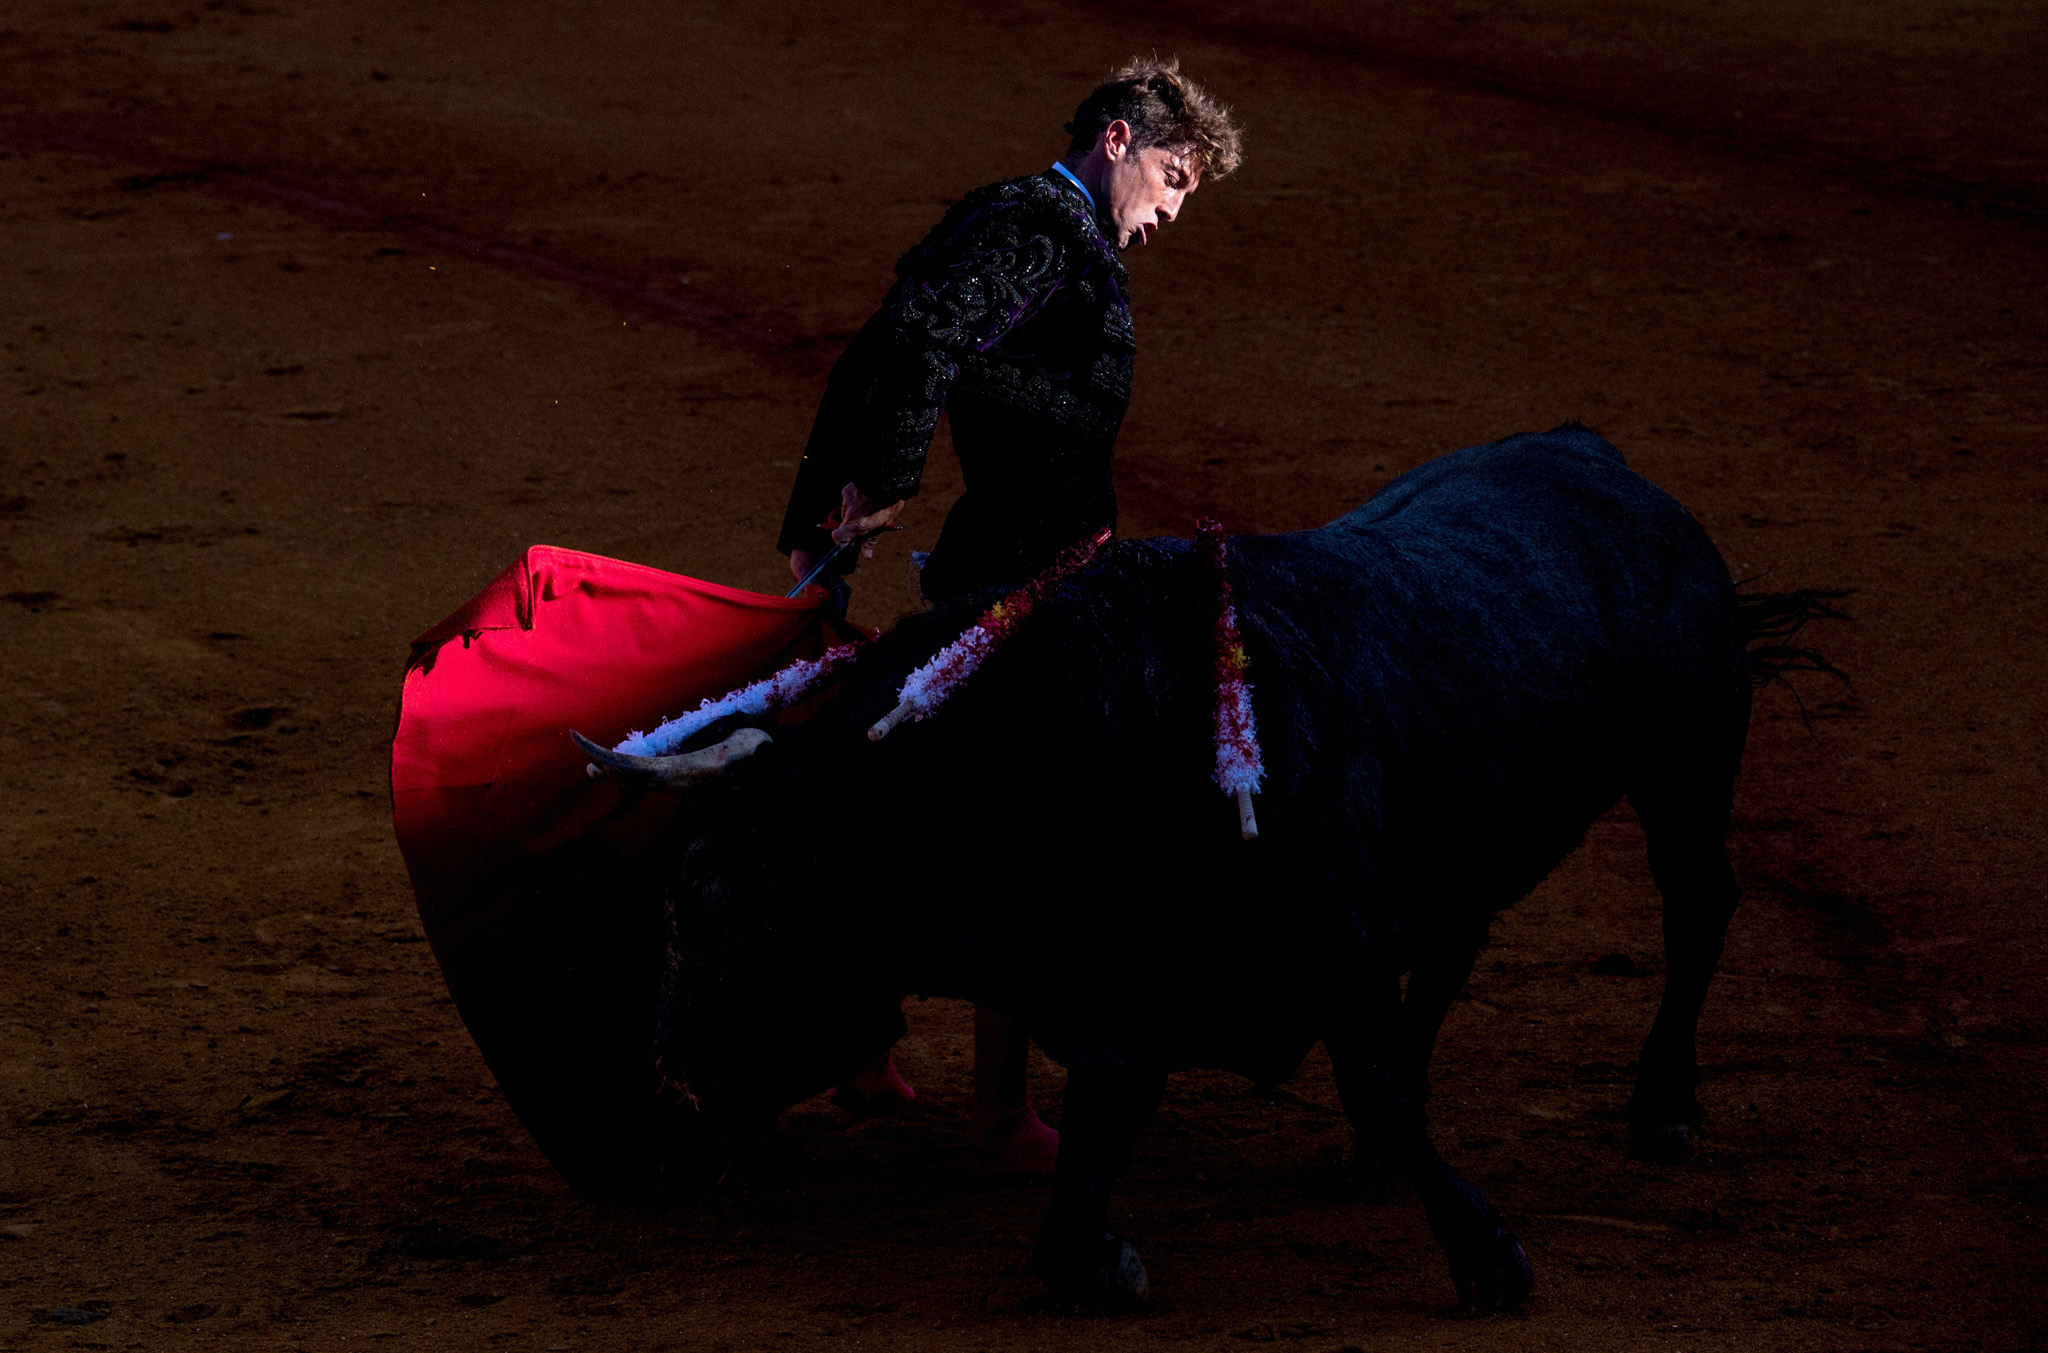 Seville Celebrates The Feria de Abril...SEVILLE, SPAIN - APRIL 13:  Bullfighter Manuel Escribano performs with a Vitorino Martin ranch fighting bull during a bullfight at La Maestranza bullring on the second day of the Feria de Abril (April's Fair) on April 13, 2016 in Seville, Spain. The Feria de Abril, which has a history dating back to 1857, takes place a fortnight after Easter each year. The origin of the fair was a cattle market but the event quickly turned its goal from commerce to having fun. More than one million local and international participants are expected to attend to Feria de Abril.  (Photo by David Ramos/Getty Images)